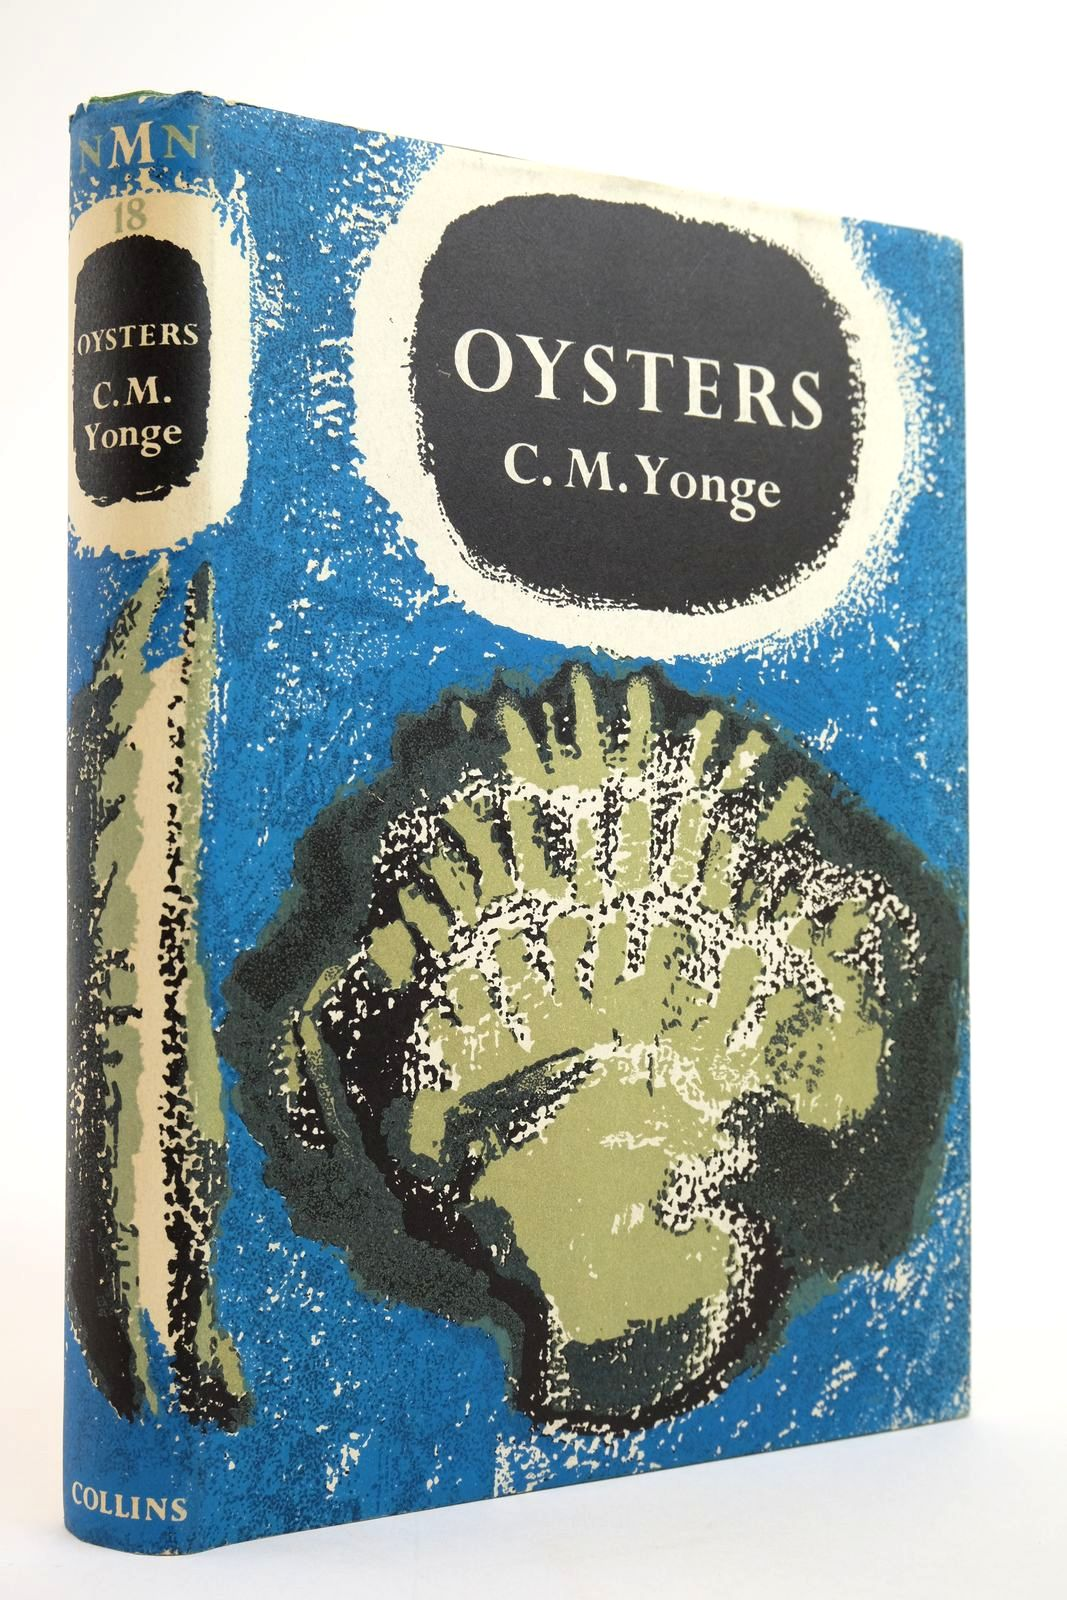 Photo of OYSTERS (NMN 18) written by Yonge, C.M. published by Collins (STOCK CODE: 2134982)  for sale by Stella & Rose's Books